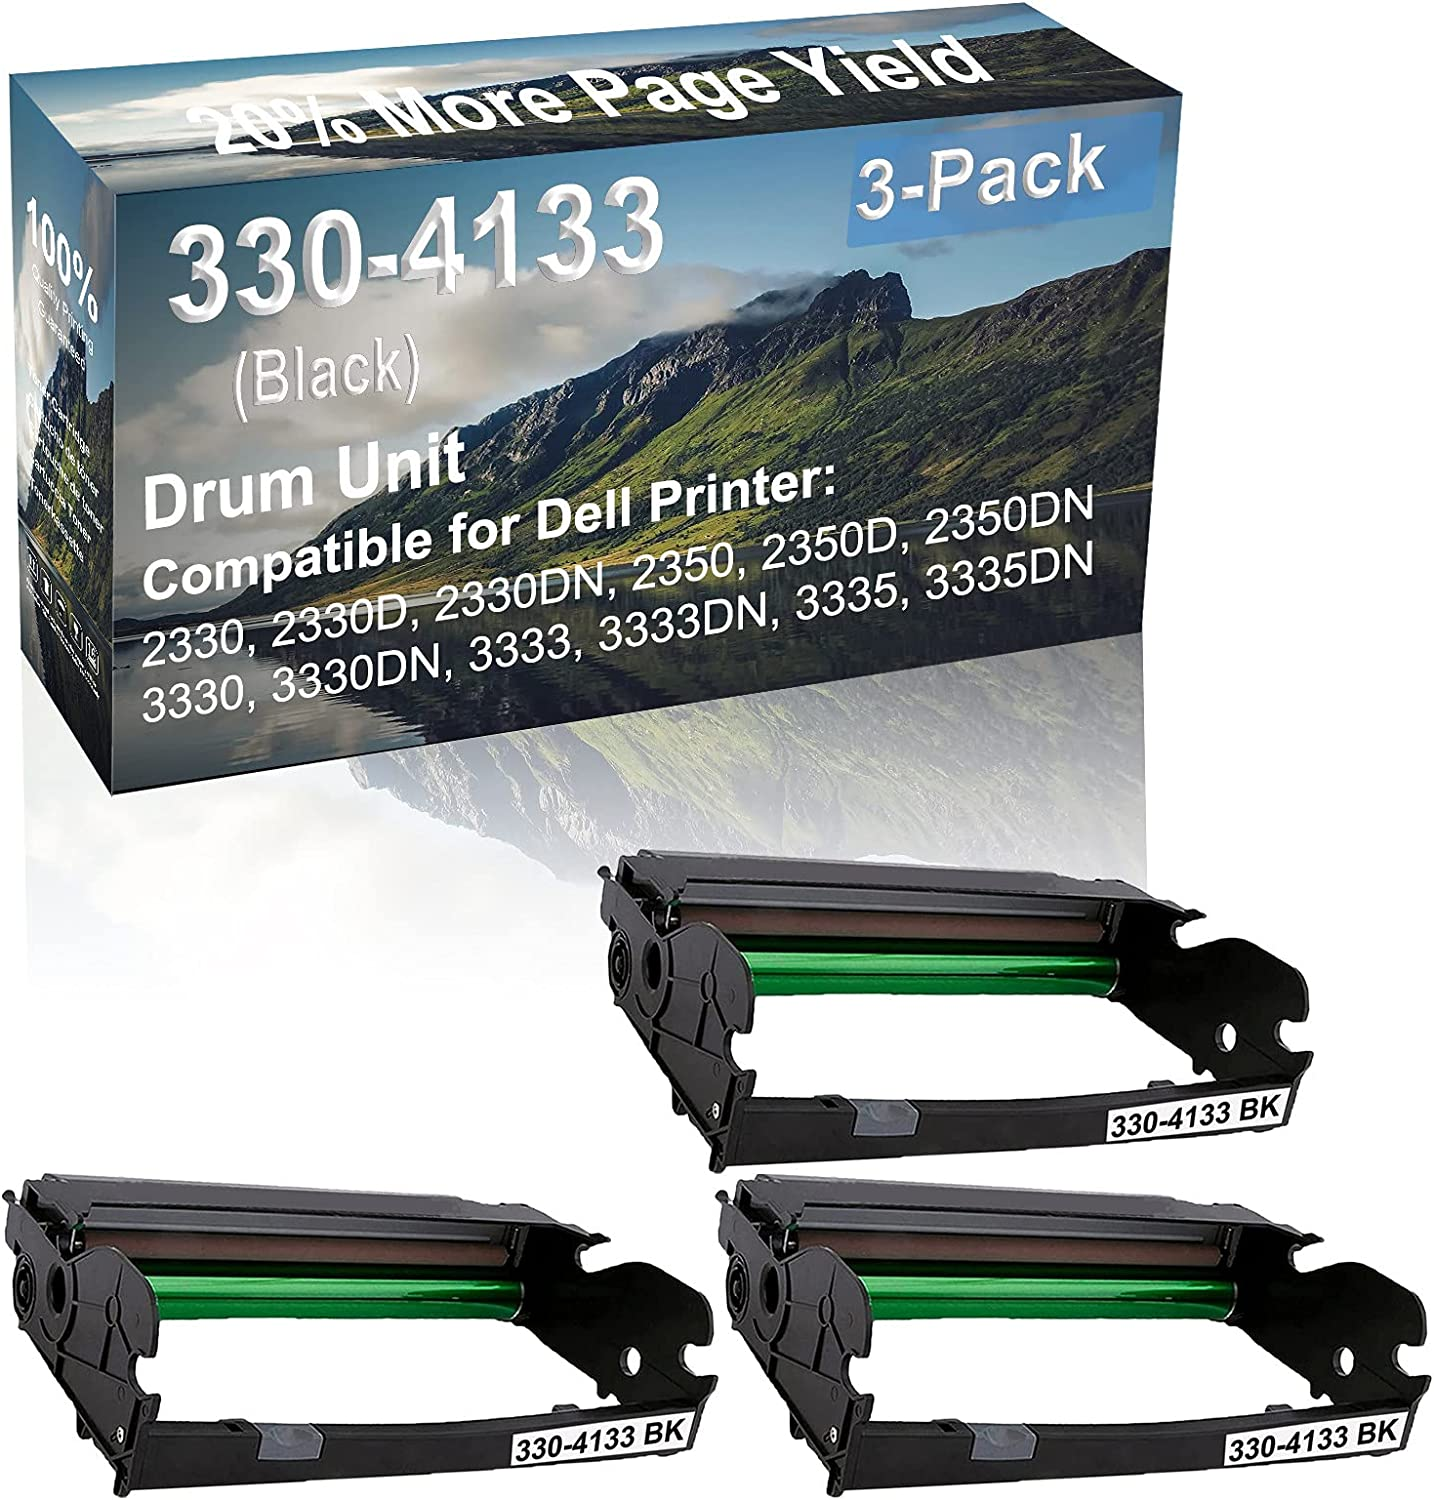 3-Pack Compatible 330-4133 Drum Kit use for Dell 2330, 2330D, 2330DN, 2350 Printer (Black)